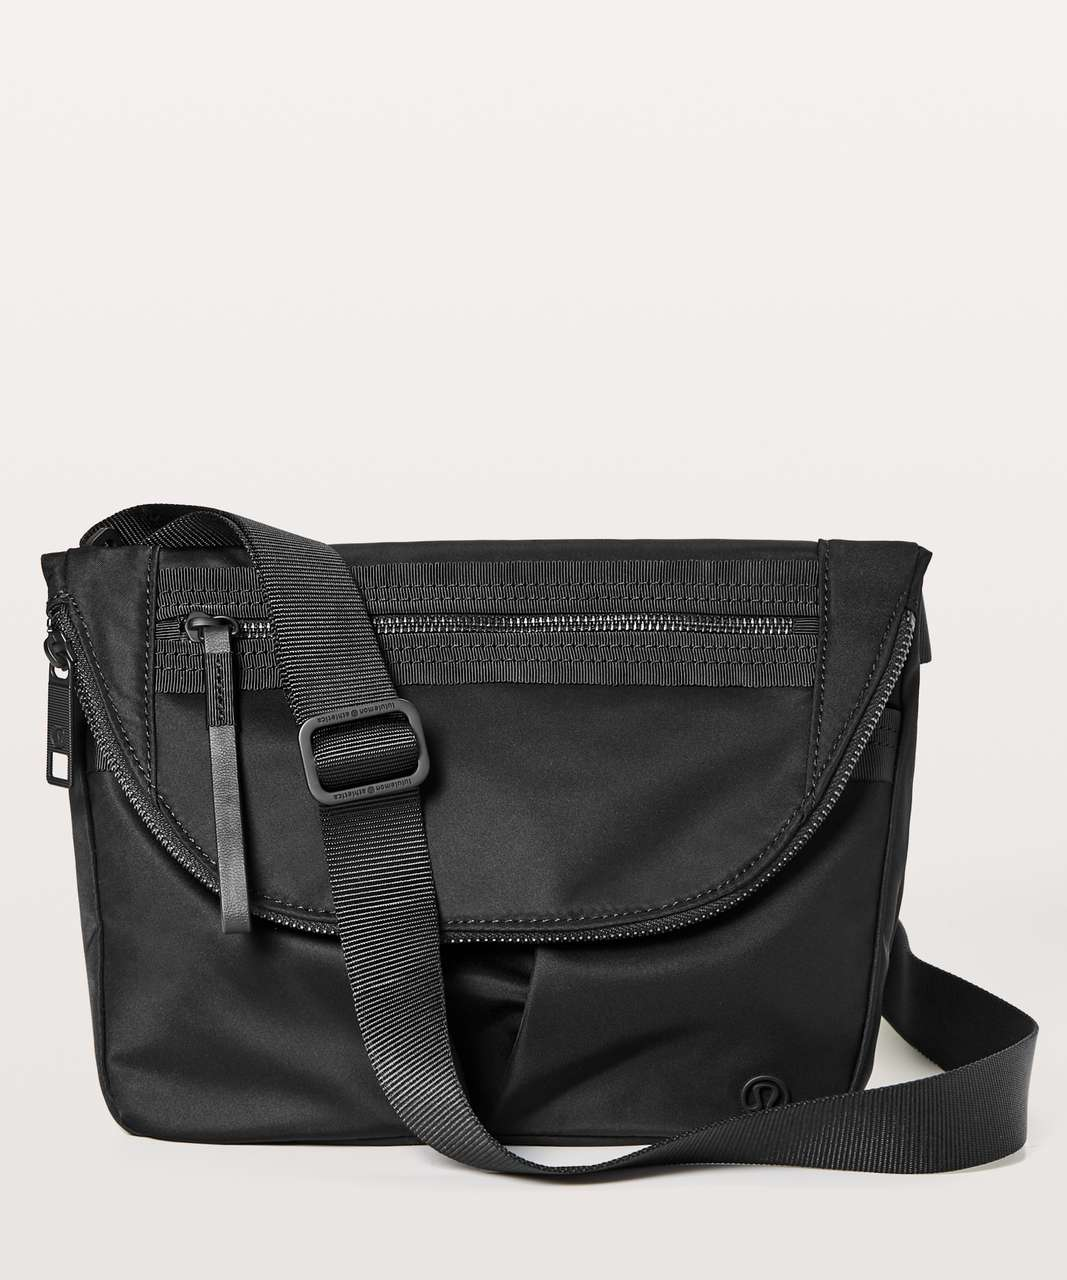 Lululemon Festival Bag II *5L - Black